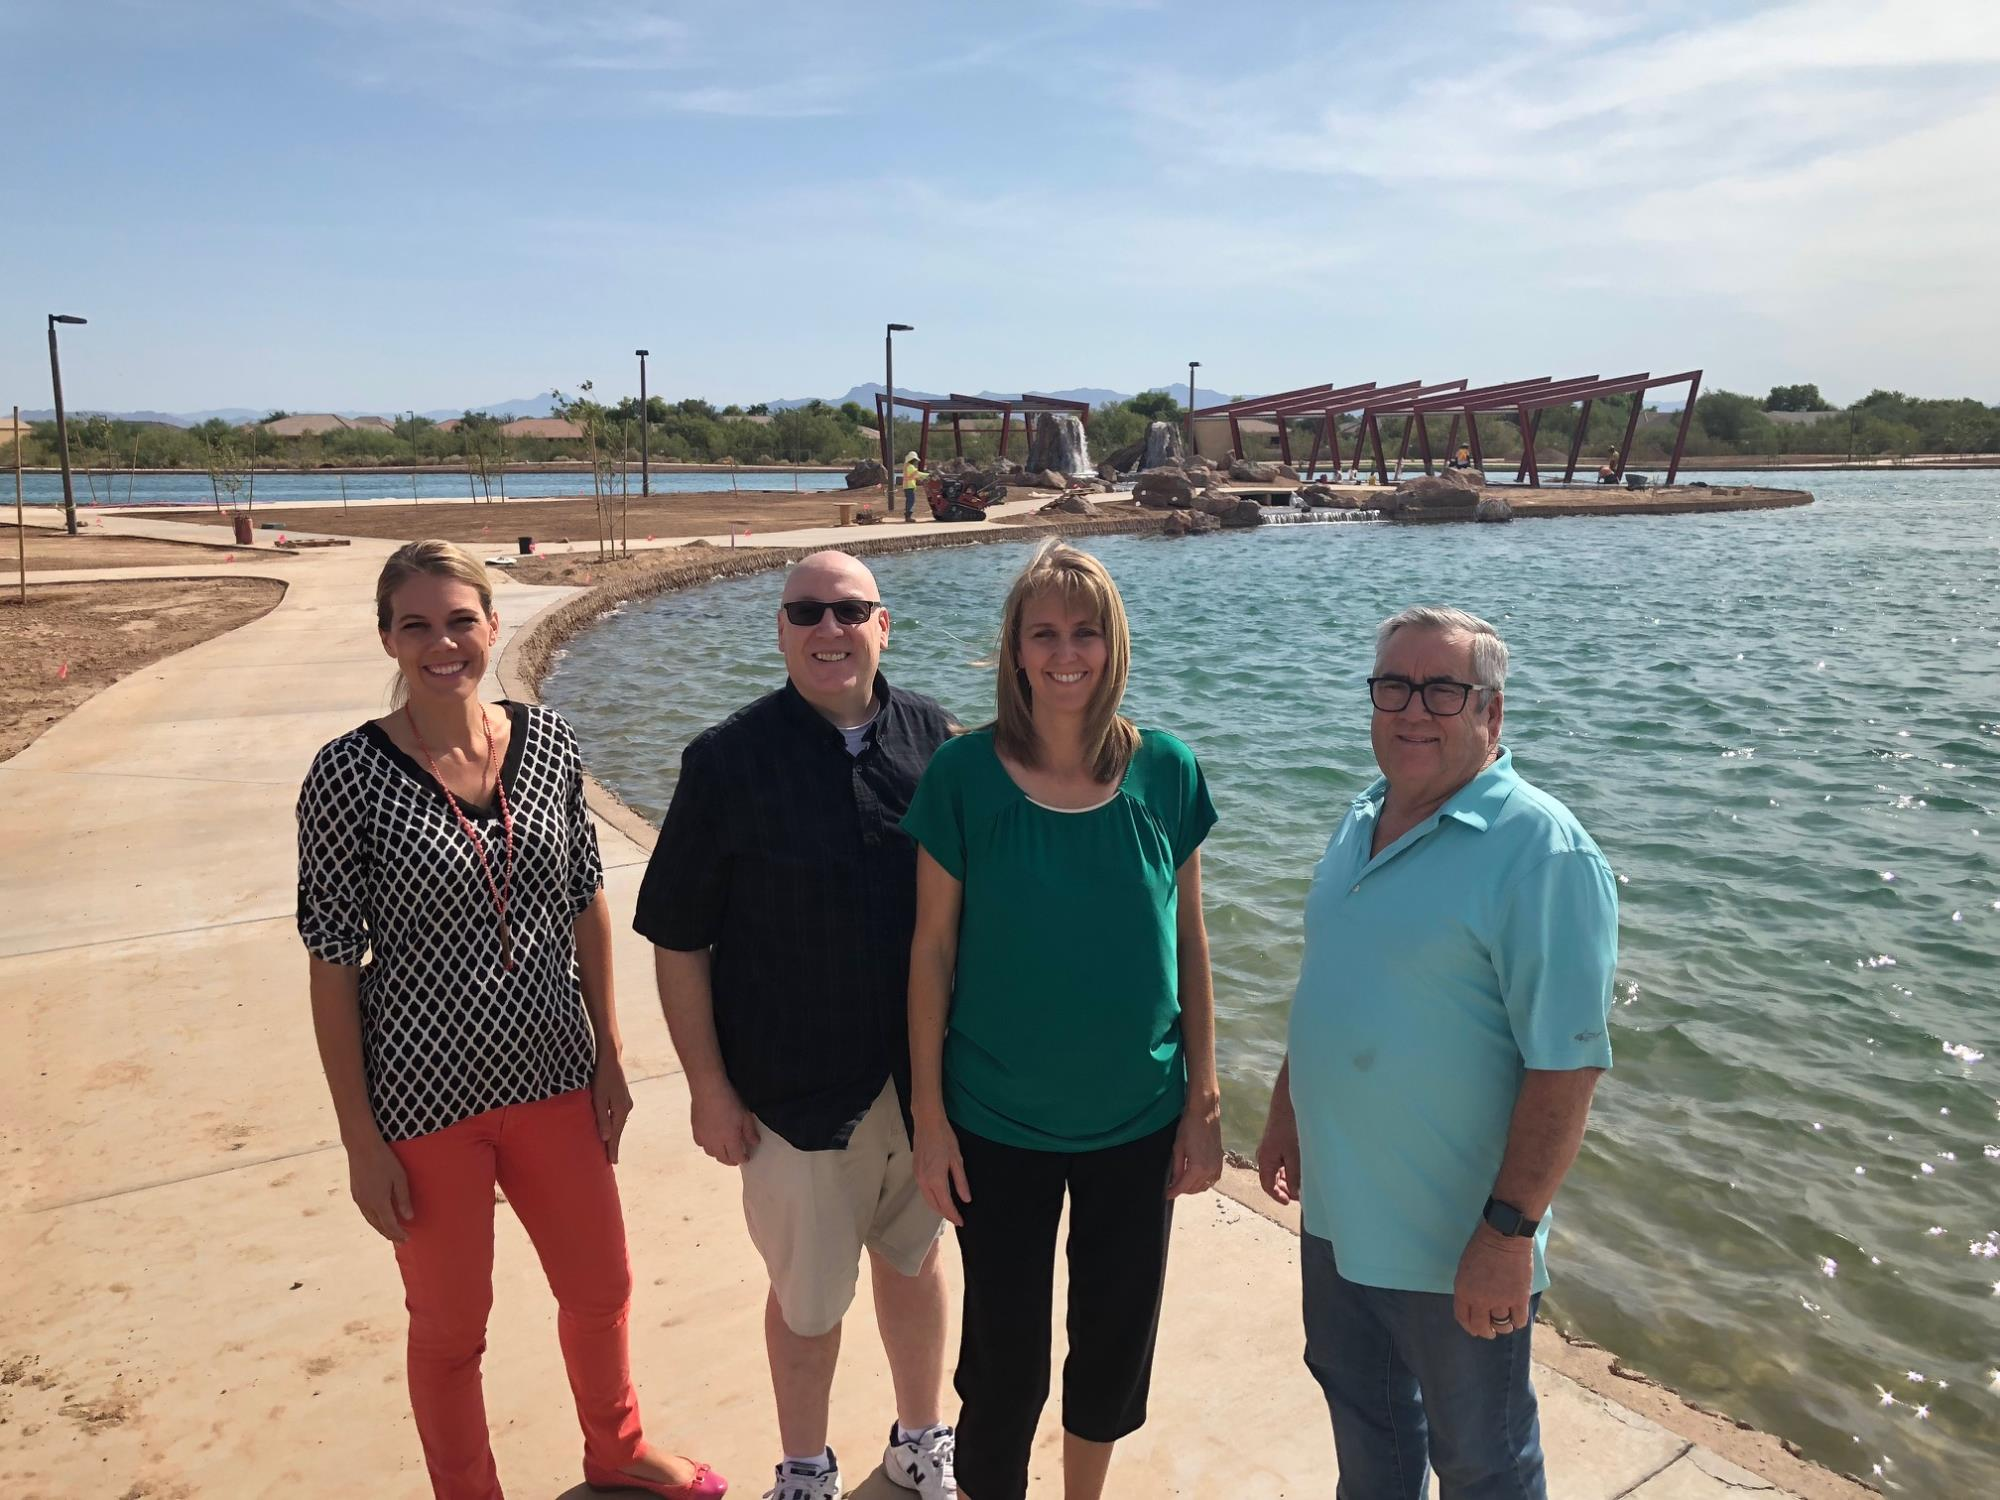 Mayor Barney and Council Members Brown, Oliphant, and Wheatley at the Infrastructure and Mansel Carter Oasis Park Tour on July 27